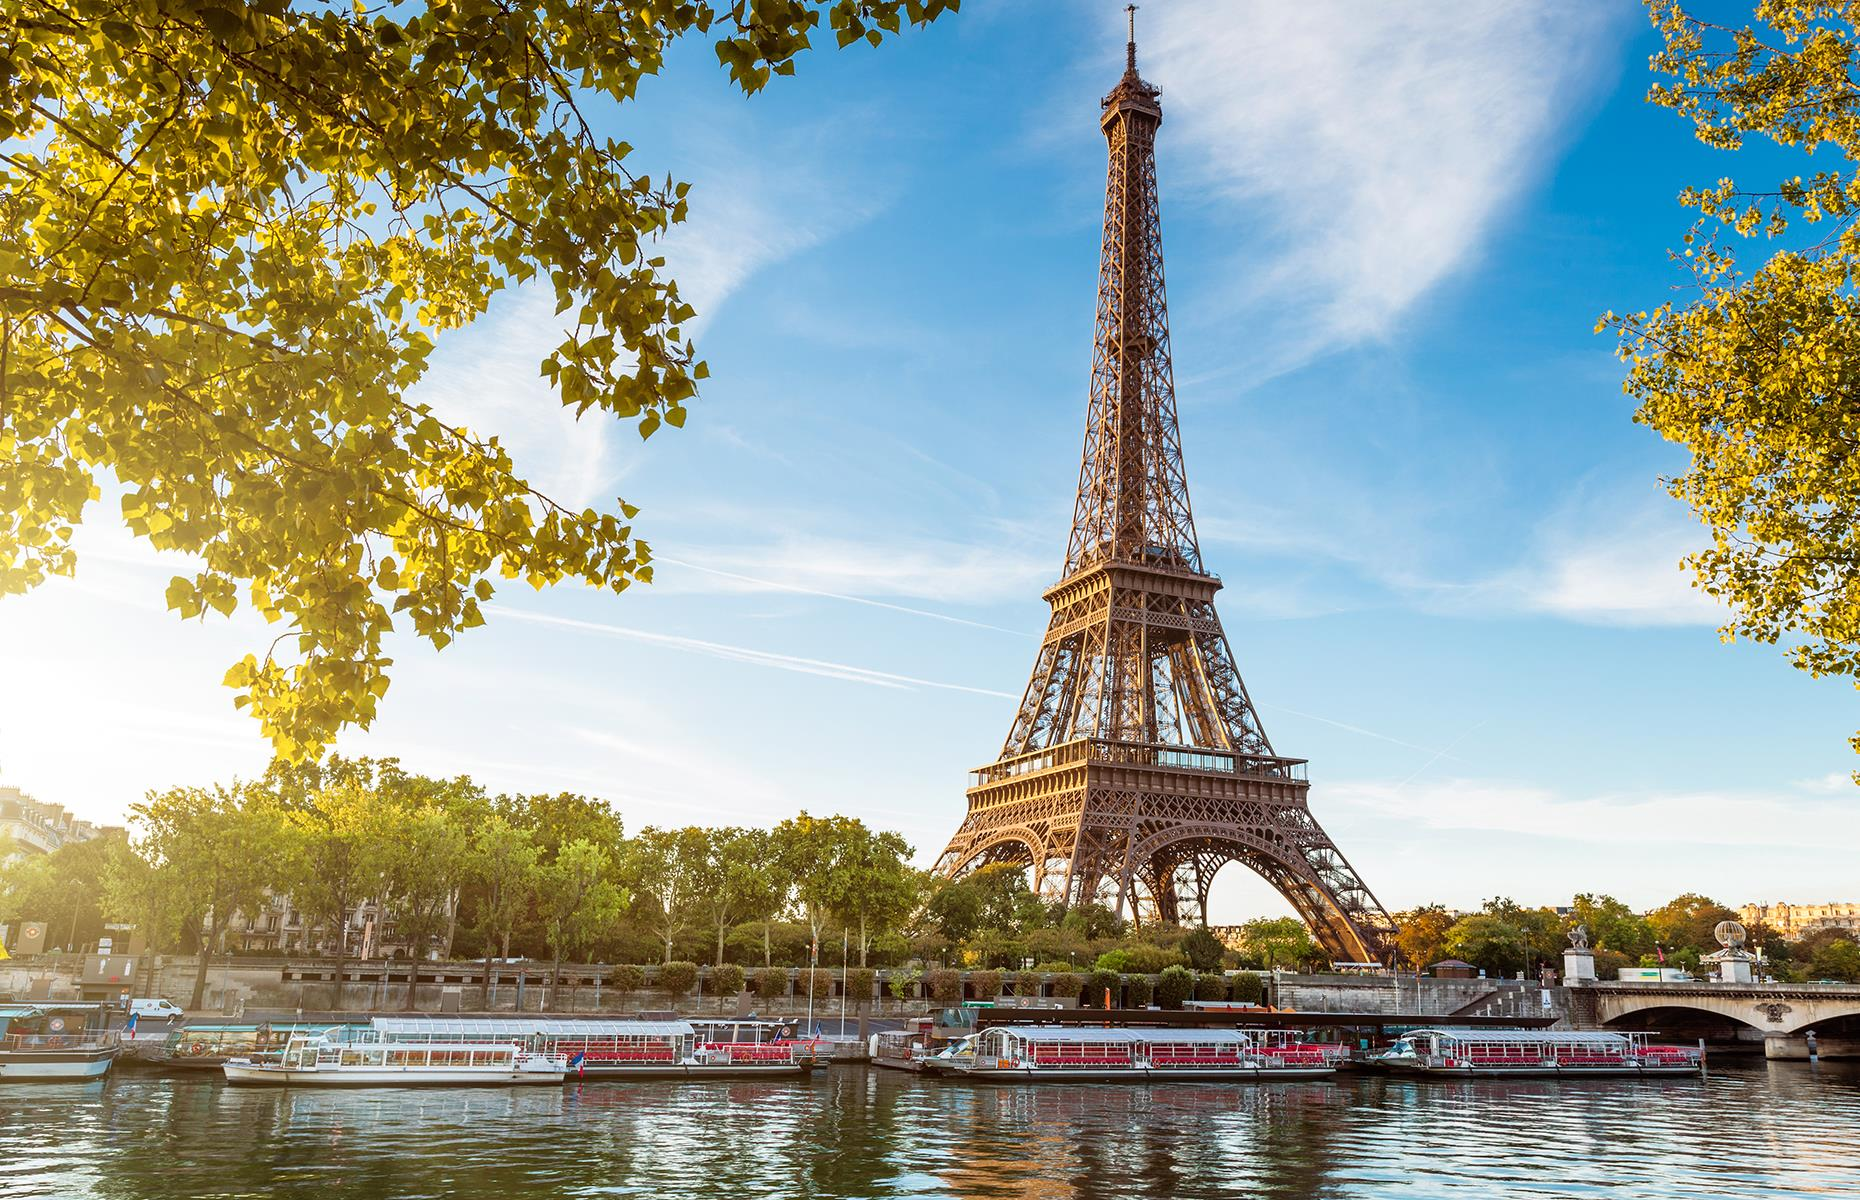 Slide 19 of 53: Designed and built by engineer Gustave Eiffel's company, the Eiffel Tower in Paris is tipped as the most visited paid monument in the world. The tower has three observationdecks, two restaurants and a small apartment Eiffel built for himself.